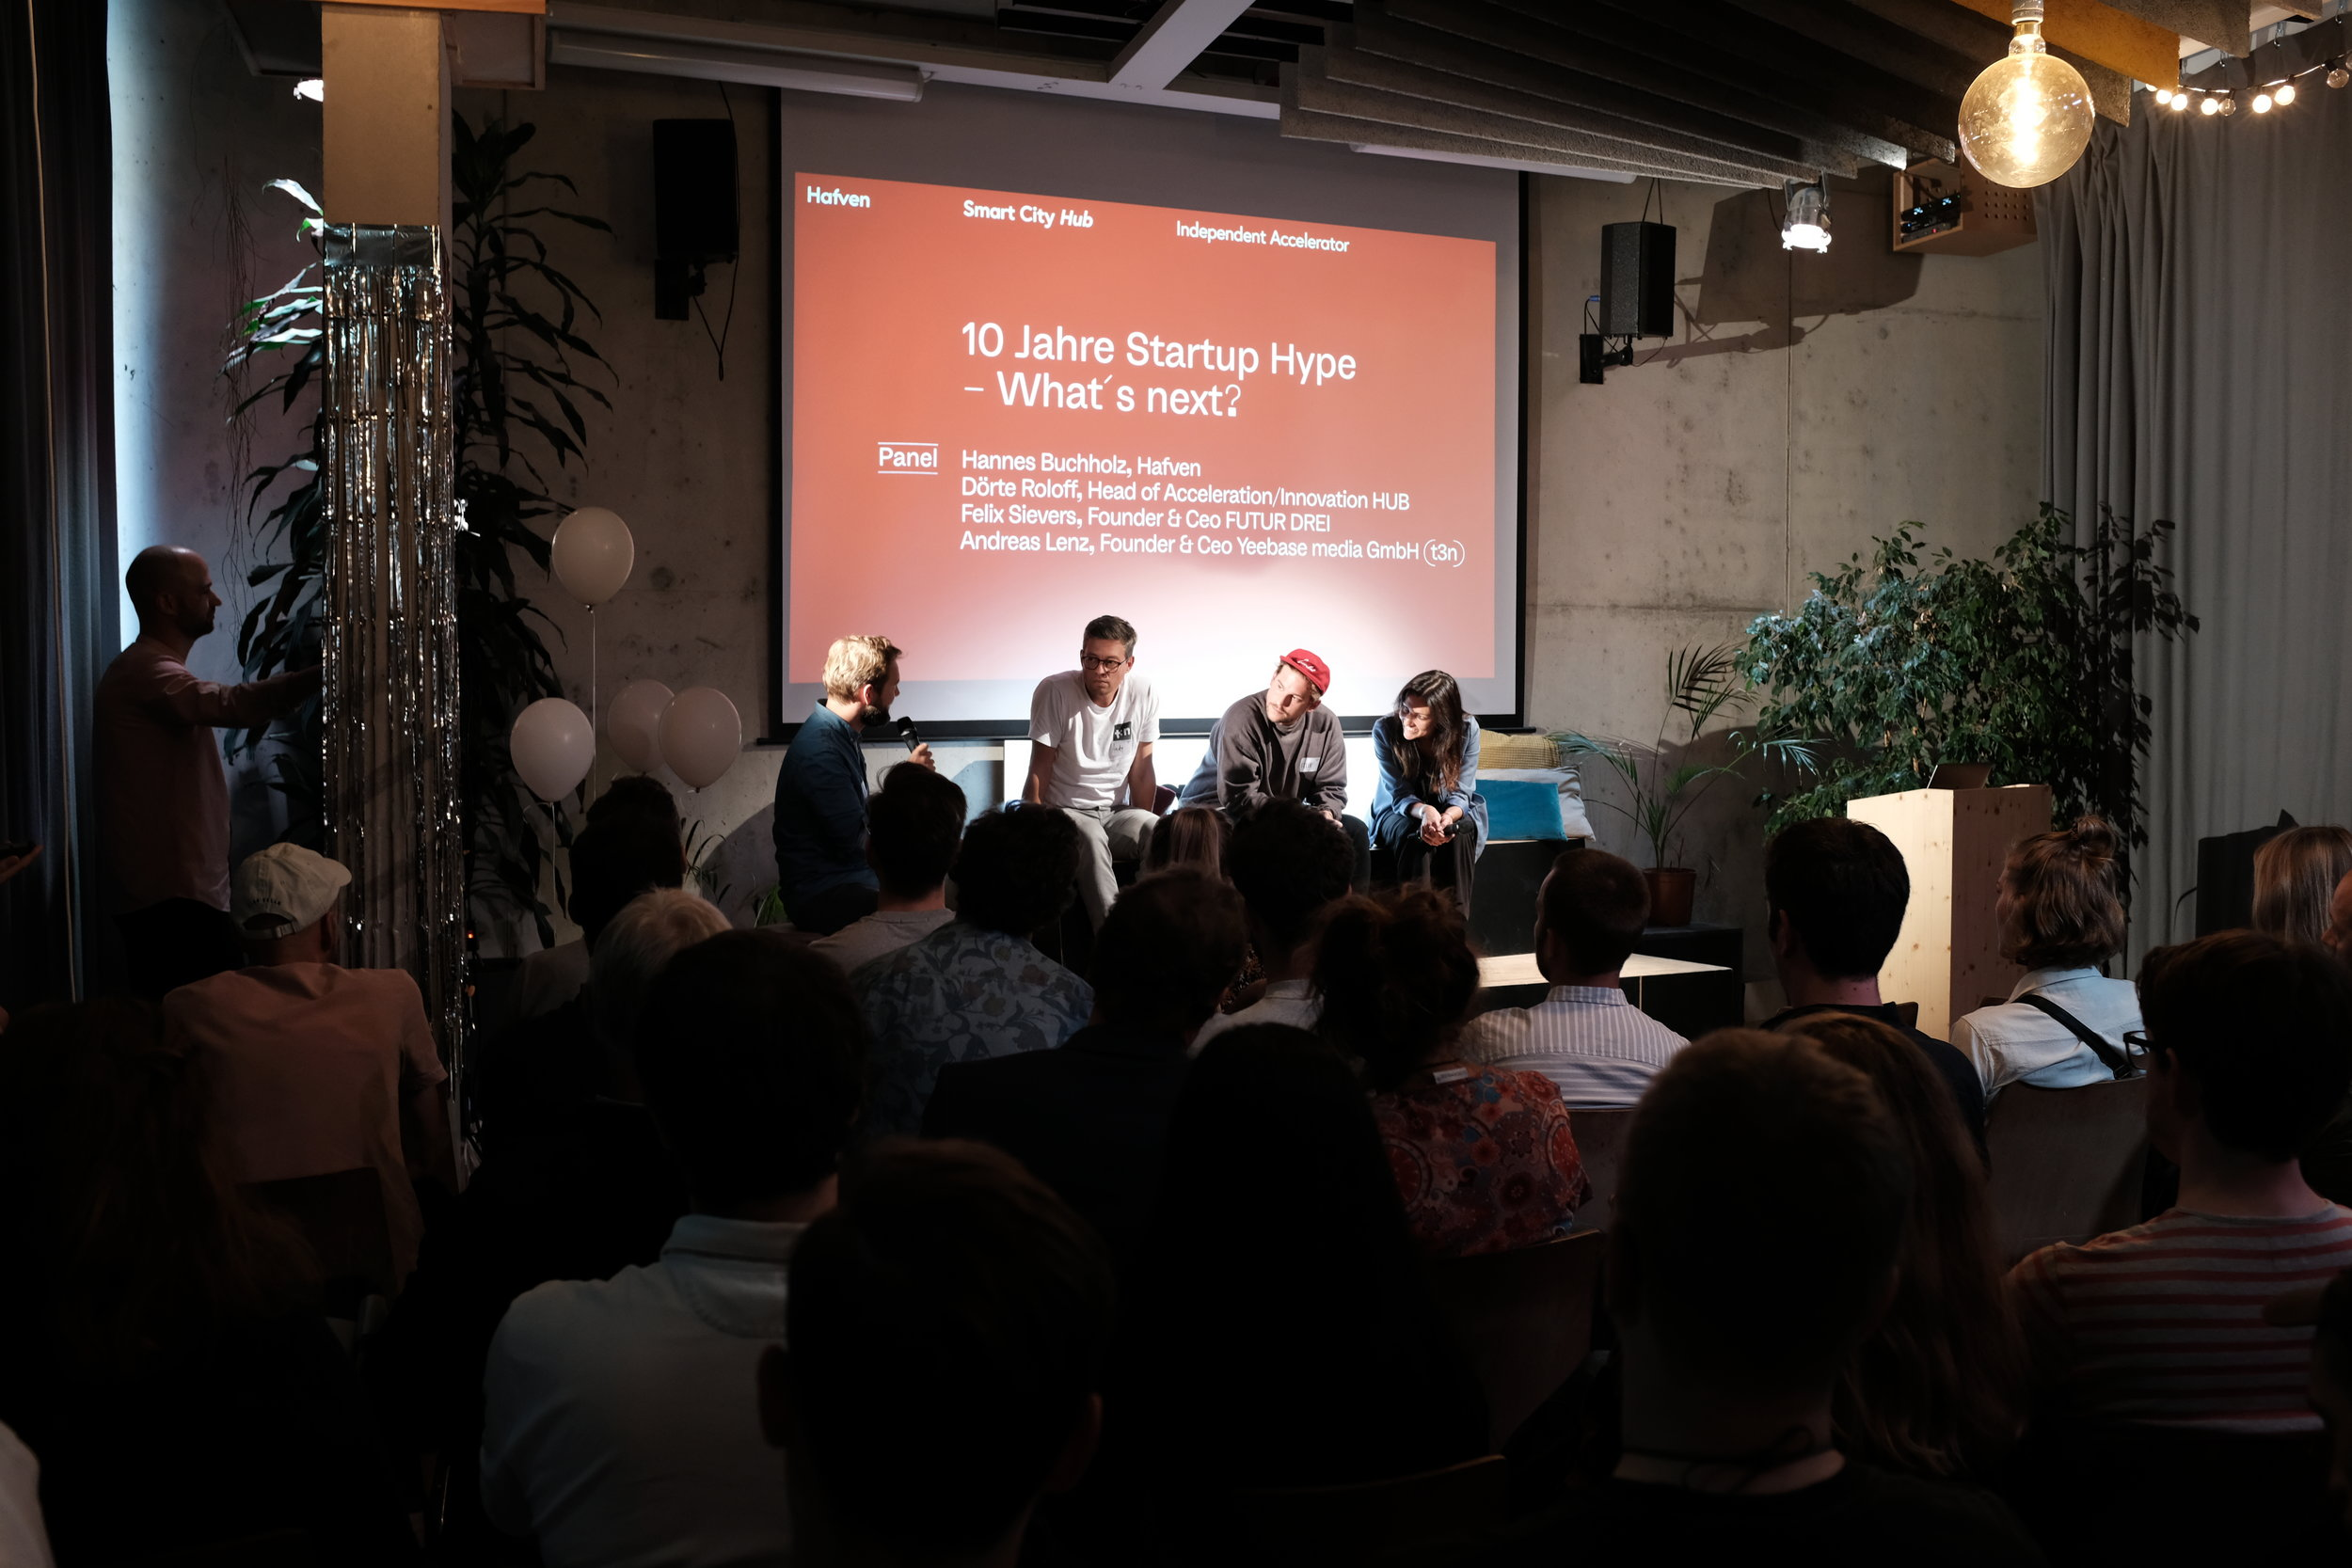 10 Jahre Startup Hype - What's Next?